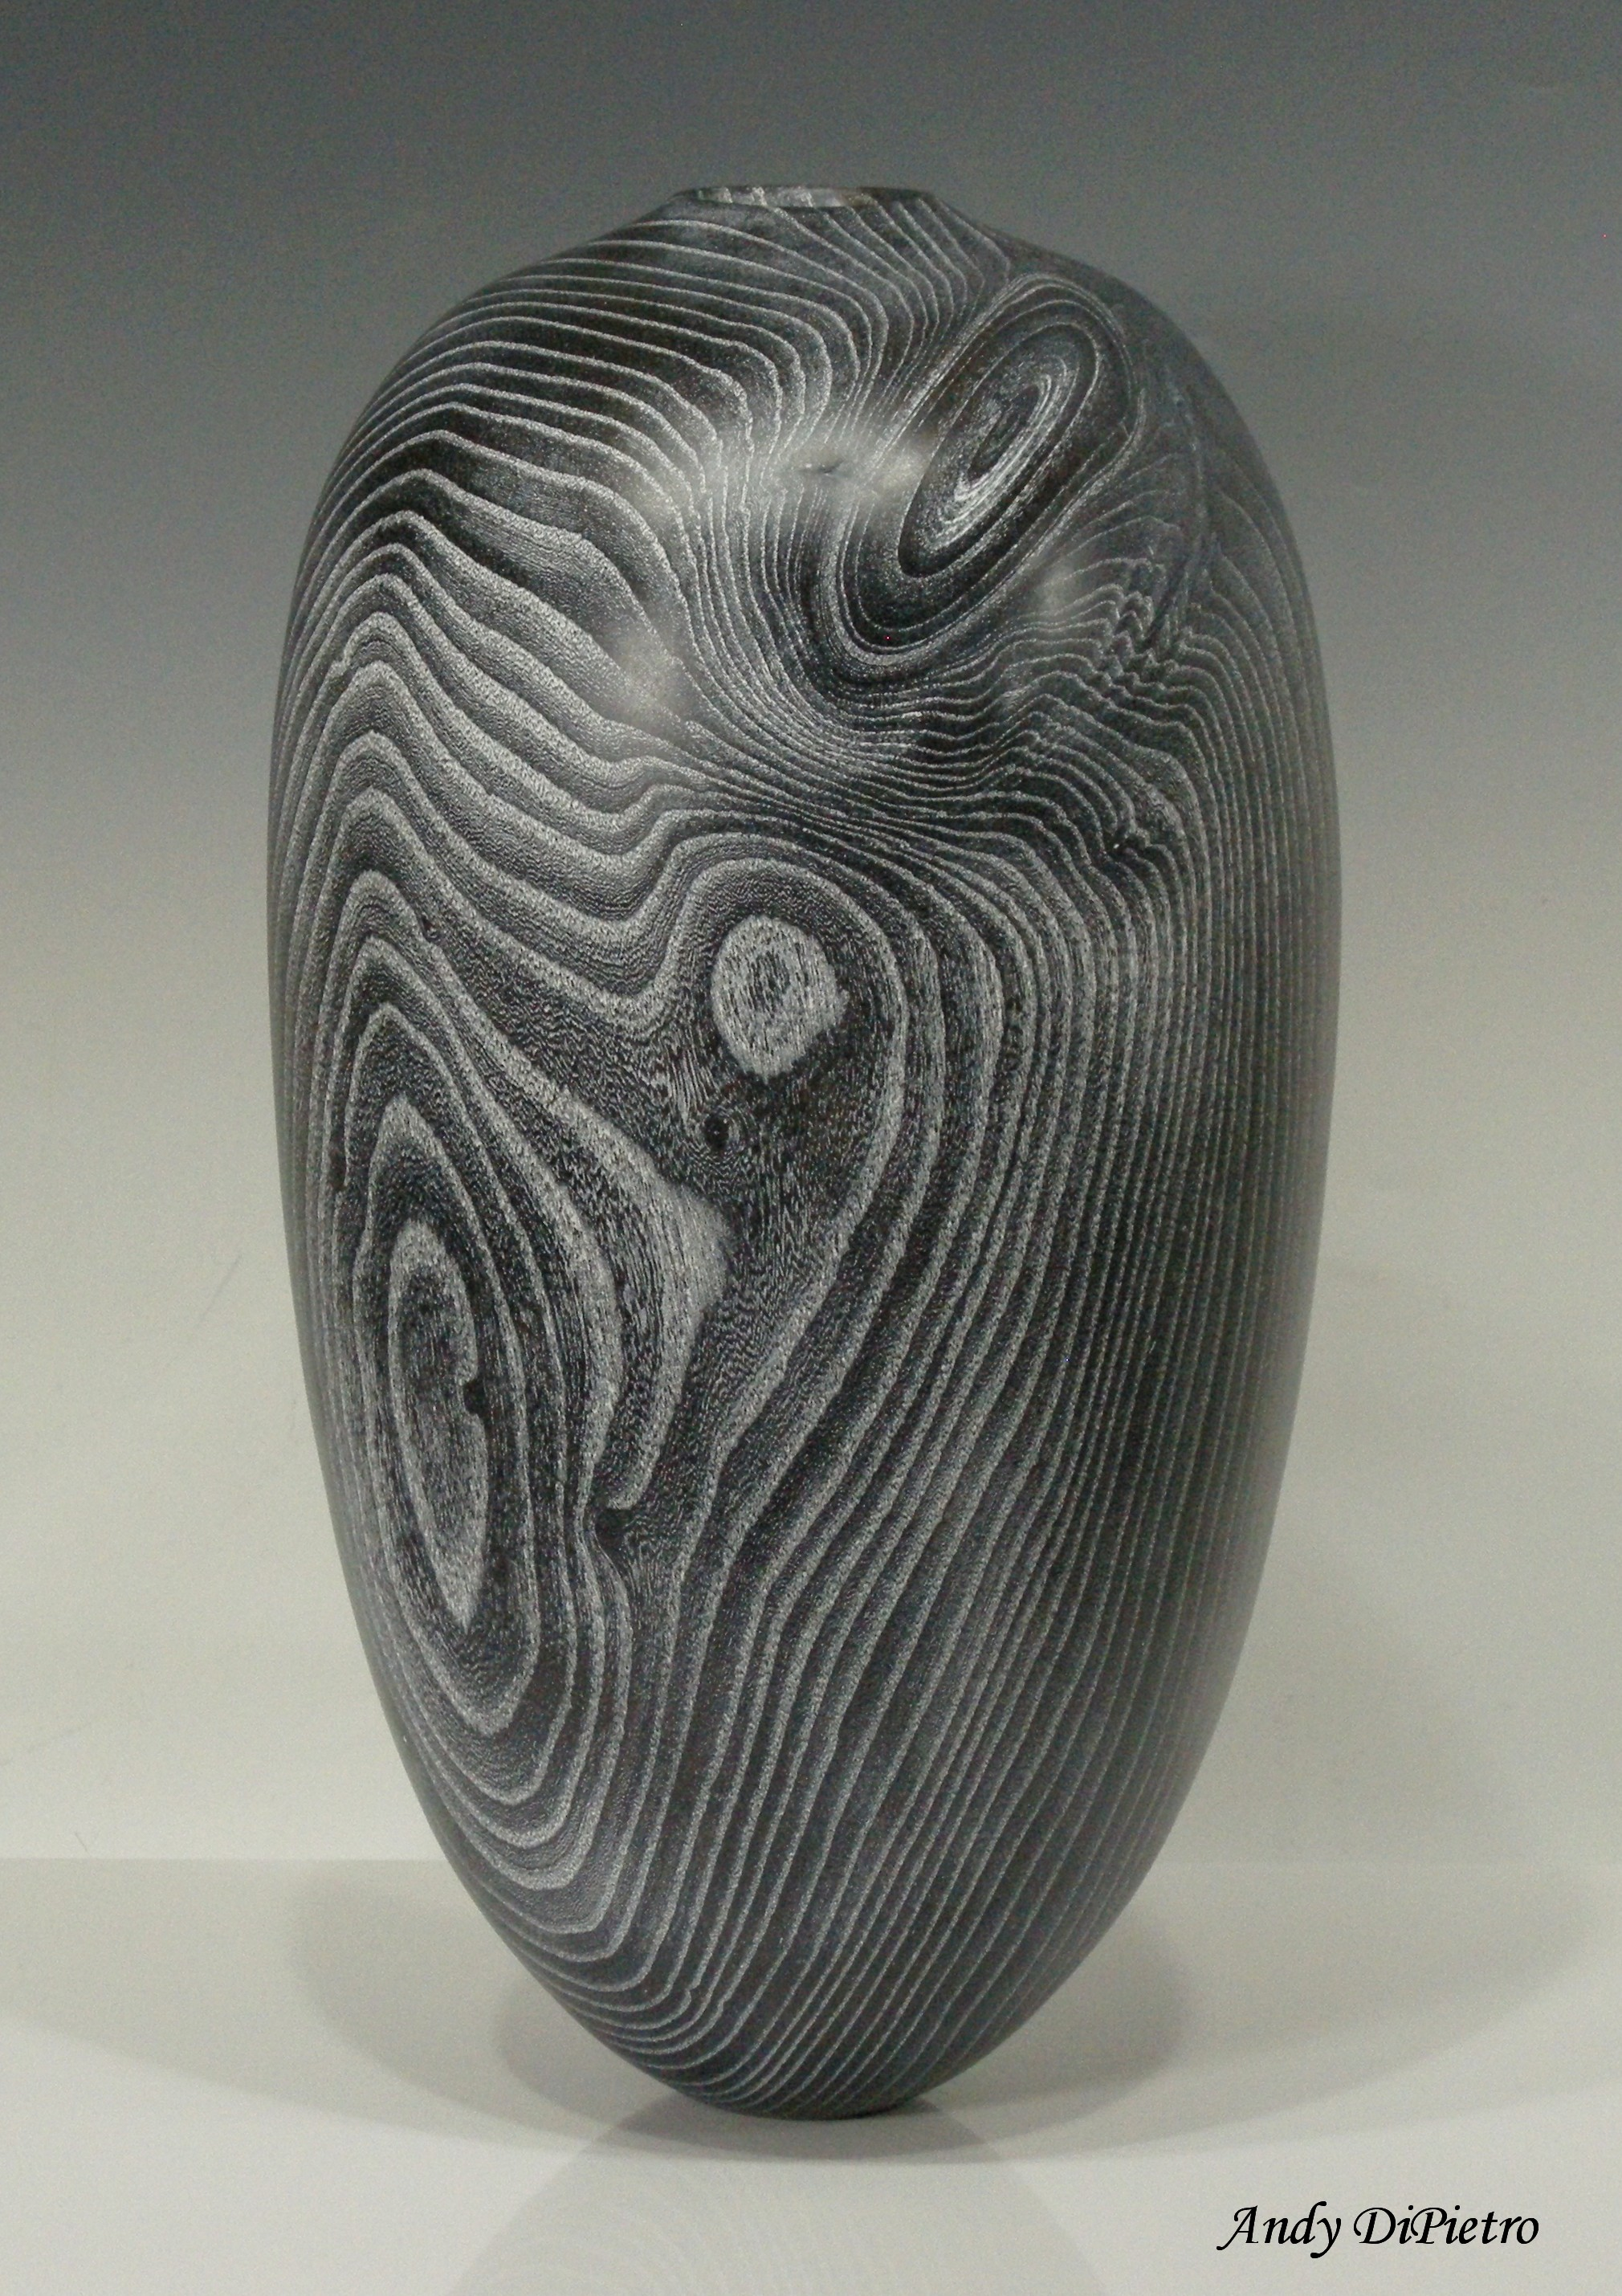 Ash Pinstriped Vessel